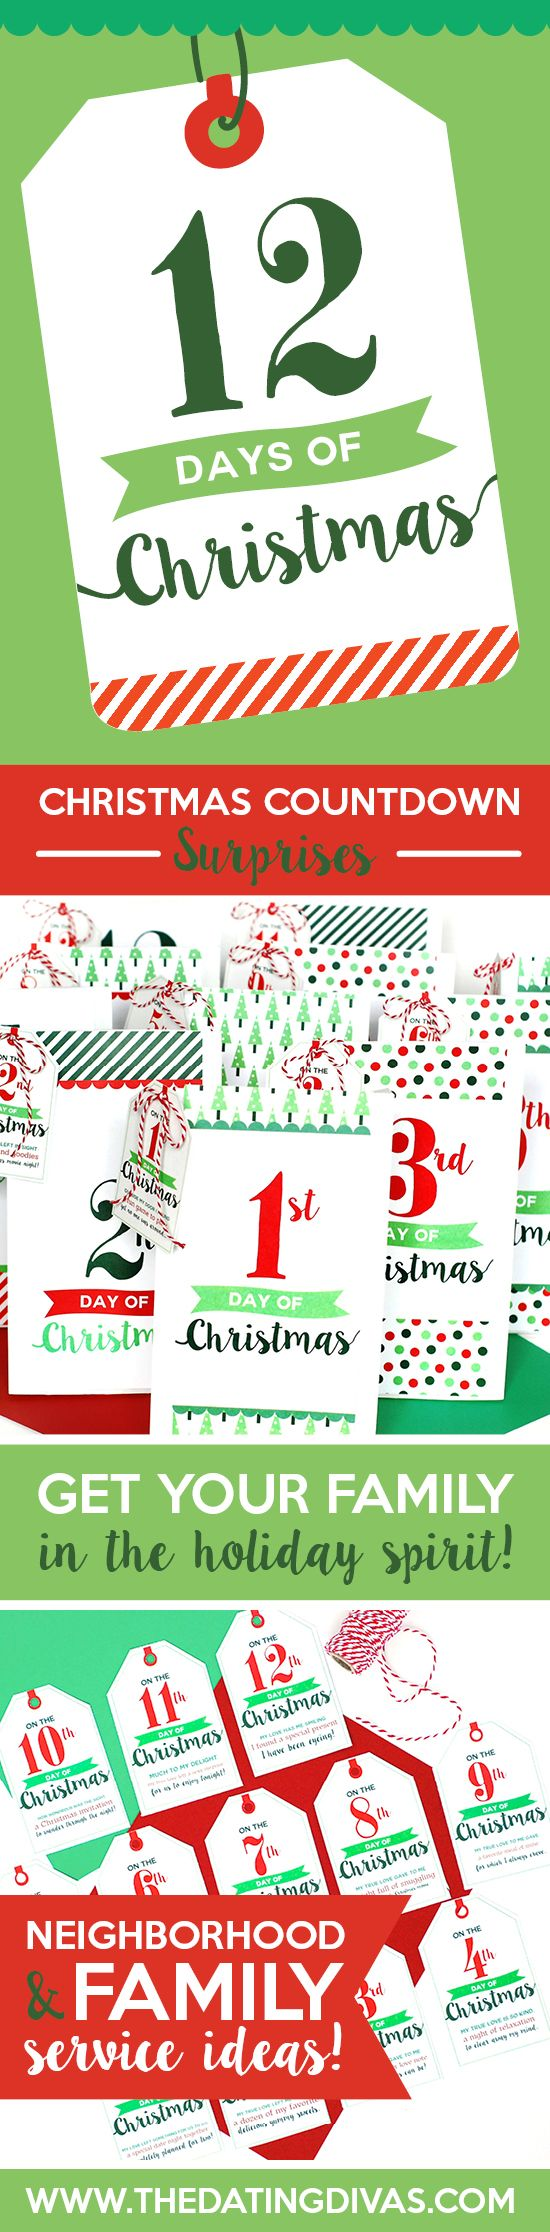 image about 12 Days of Christmas Printable Tags referred to as Do-it-yourself Items : 12 Times of Xmas company strategy. Just about anything